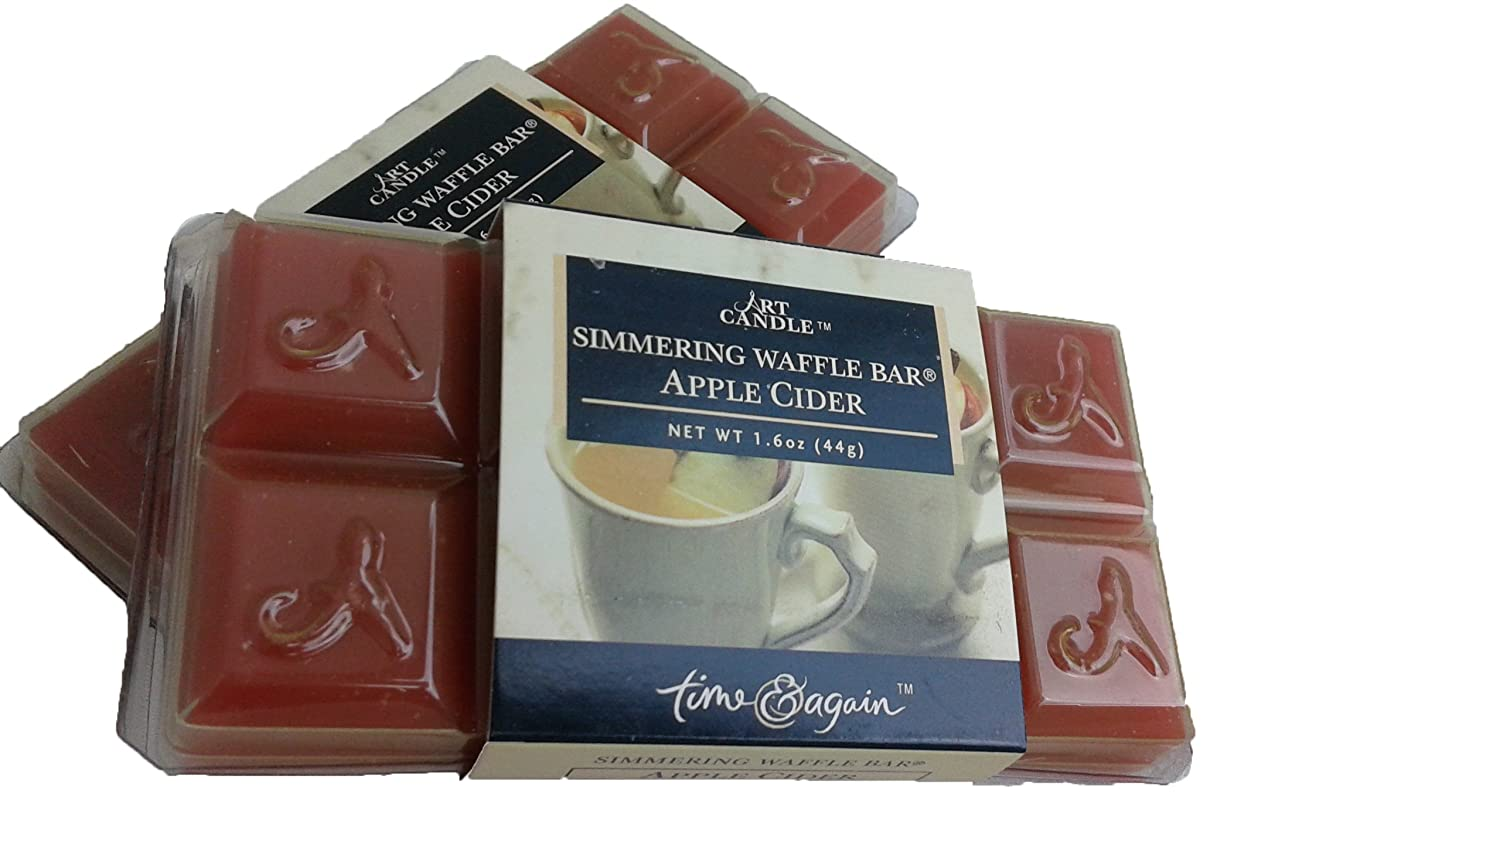 Time and Again Simmering Waffle Bar Candle | Apple Cider Scent | 2 Pack